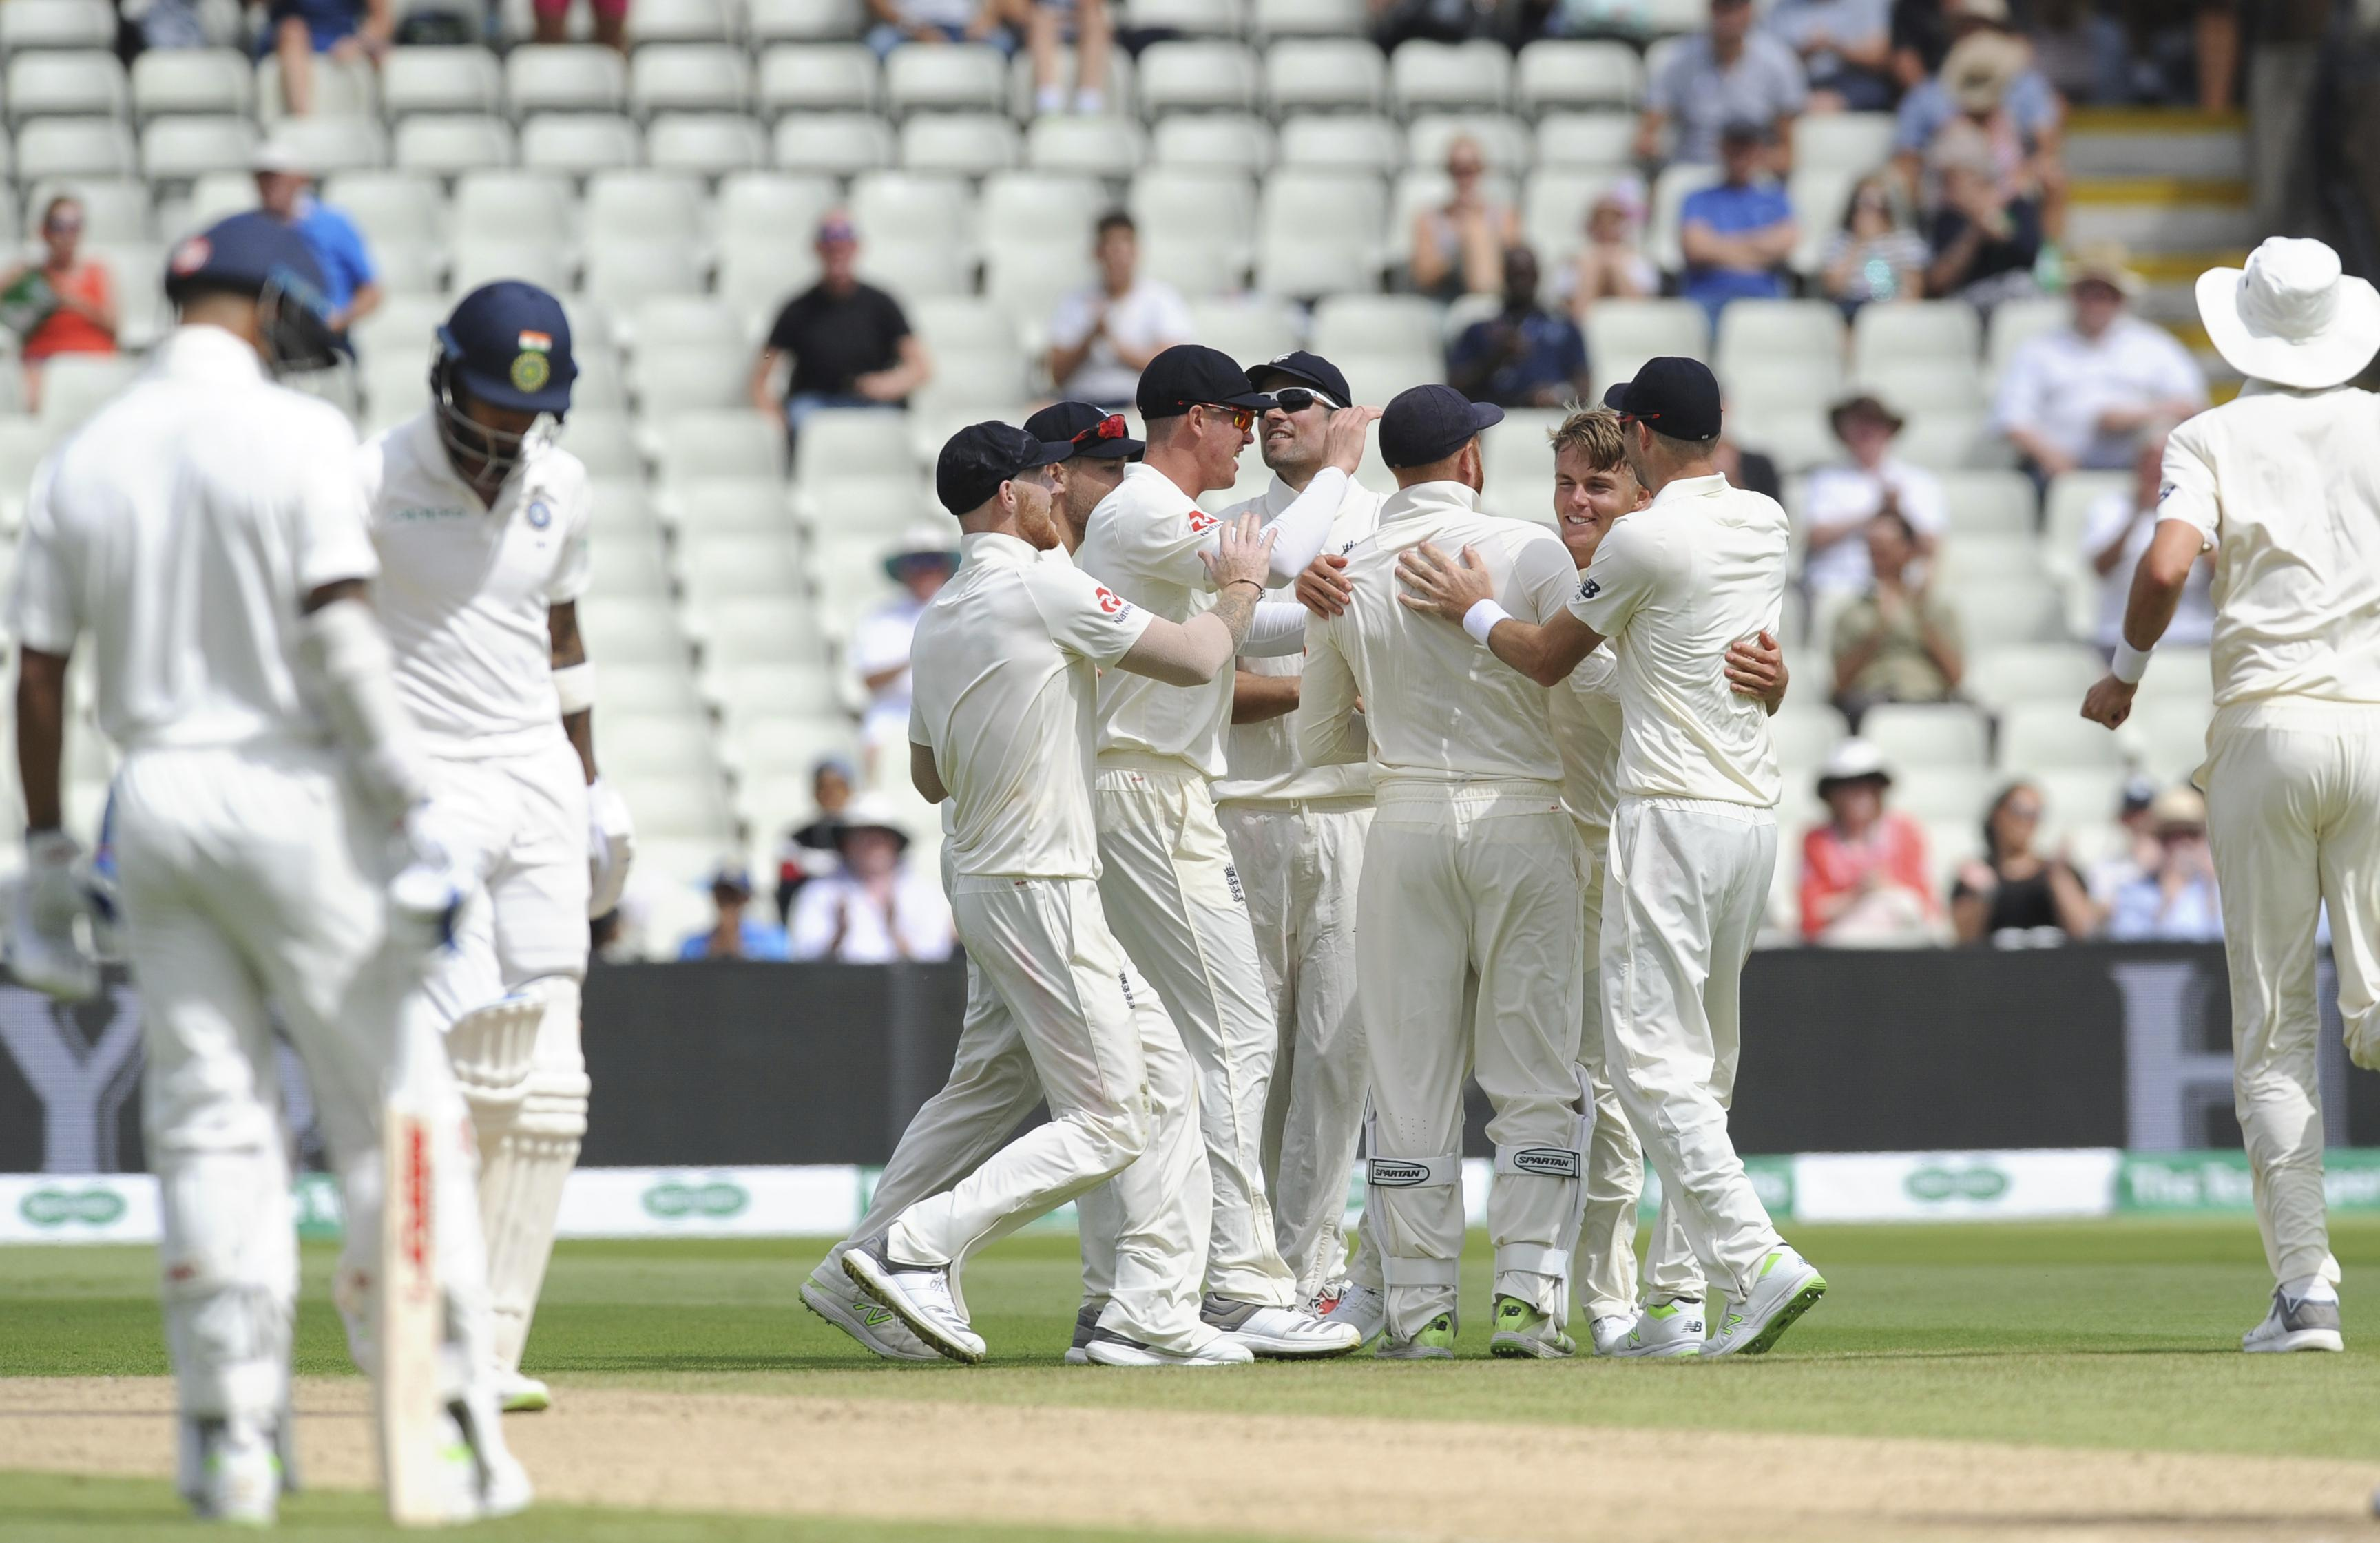 Sam Curran took three scalps as India crumbled from 50-0 to 59-3